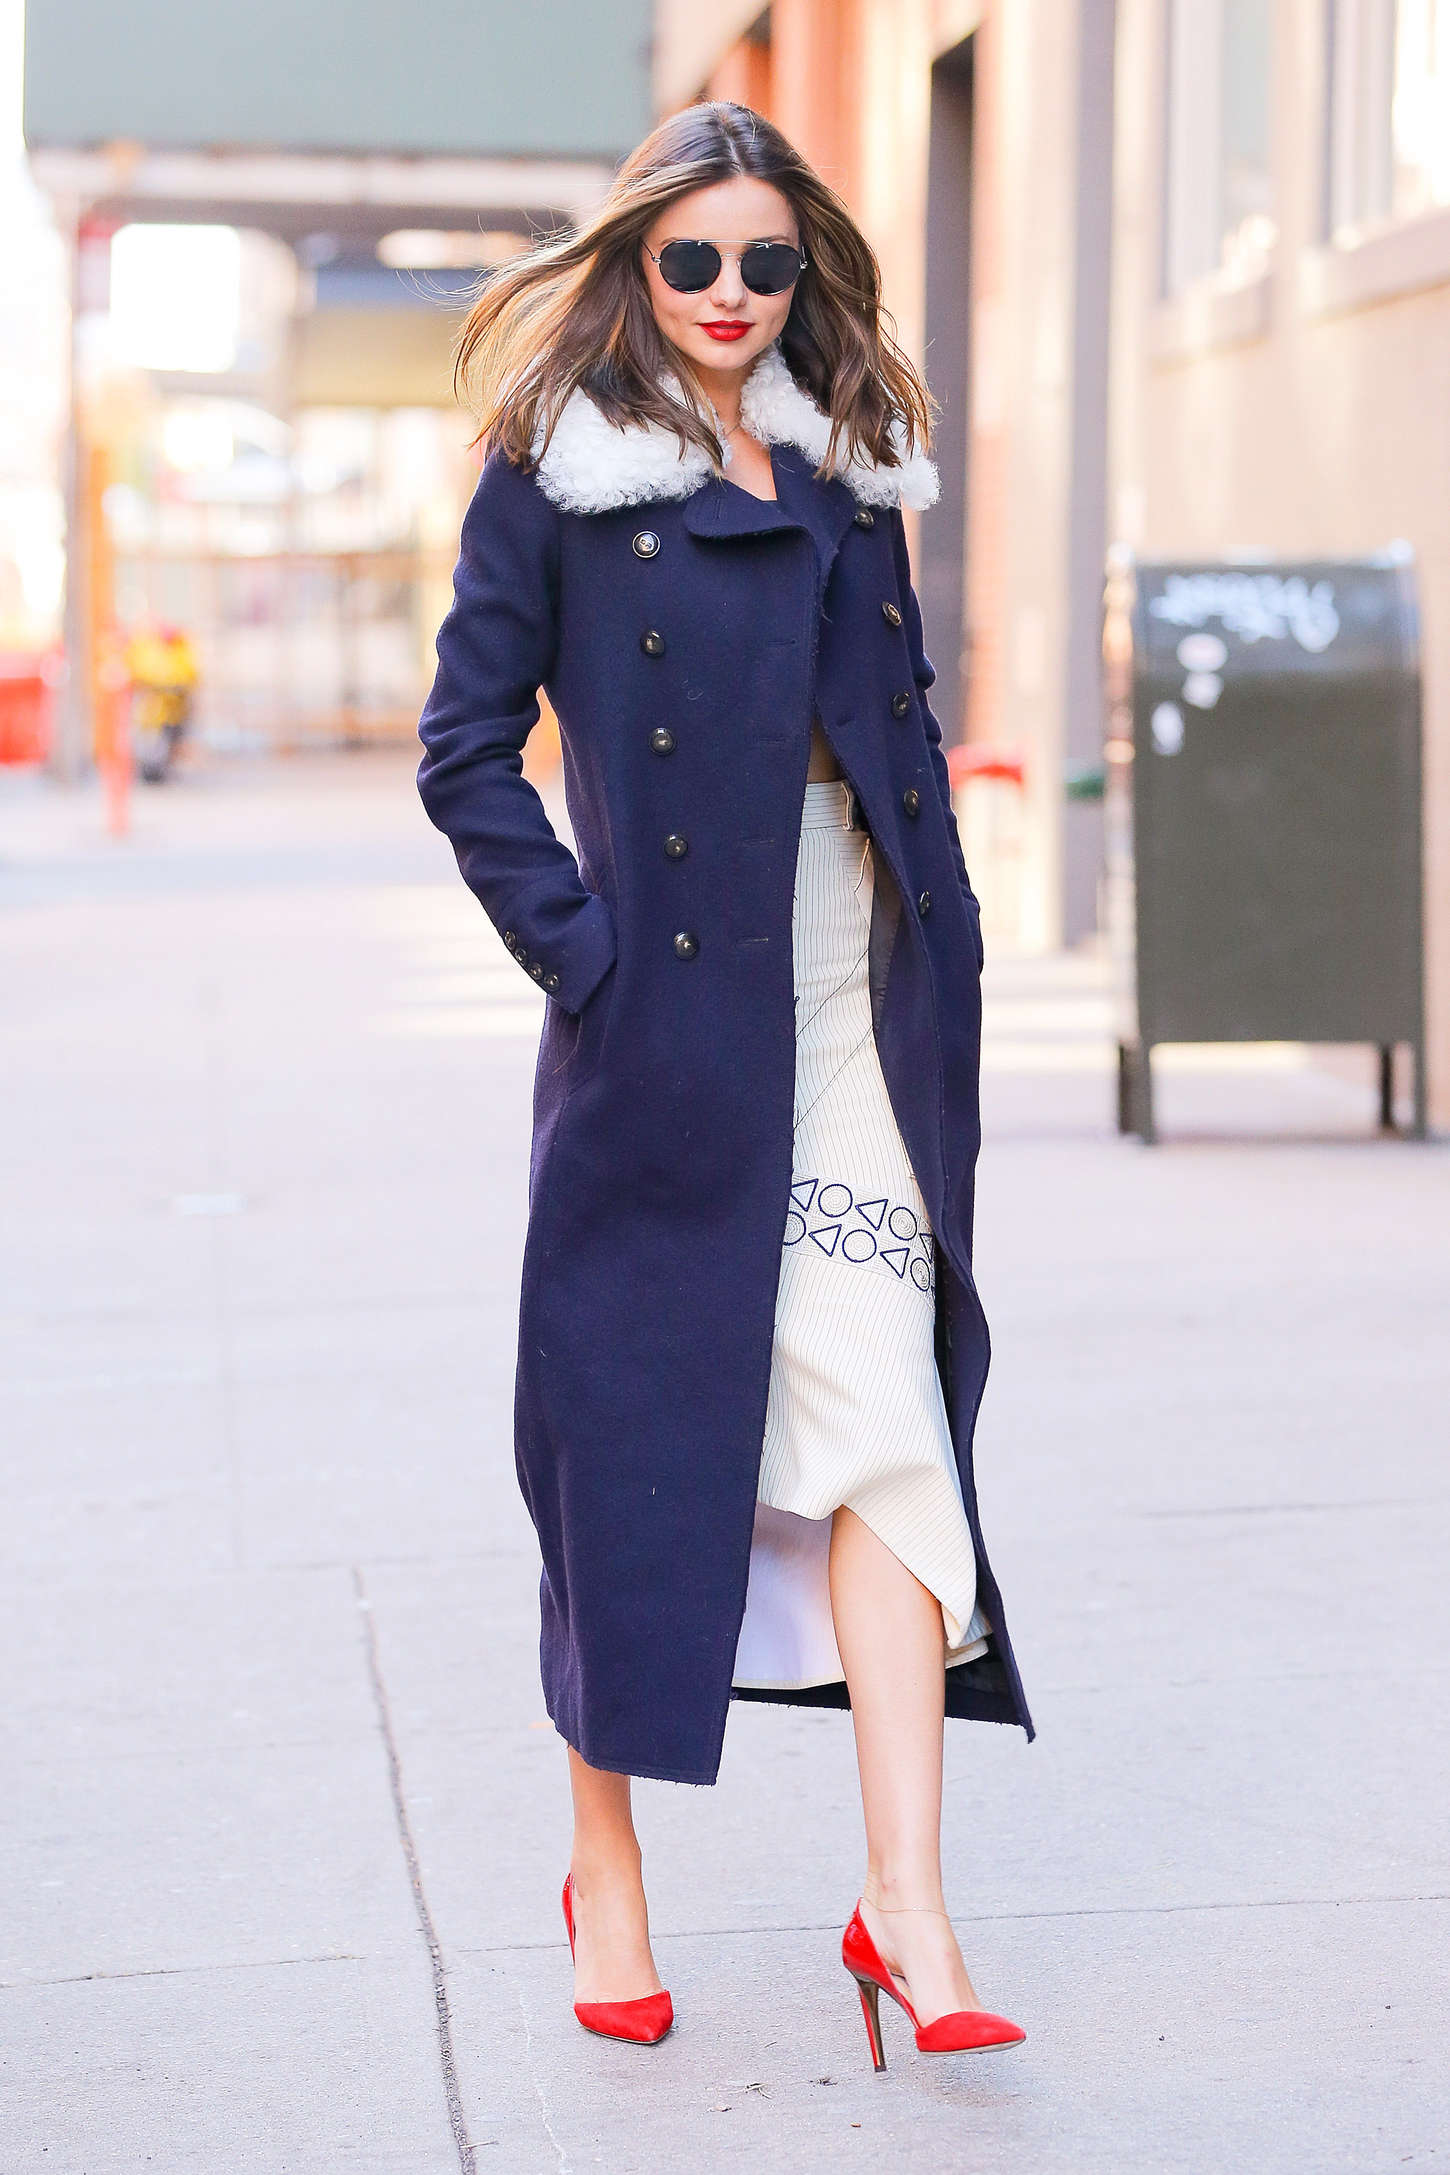 Miranda Kerr 2015 : Miranda Kerr out in NYC -25